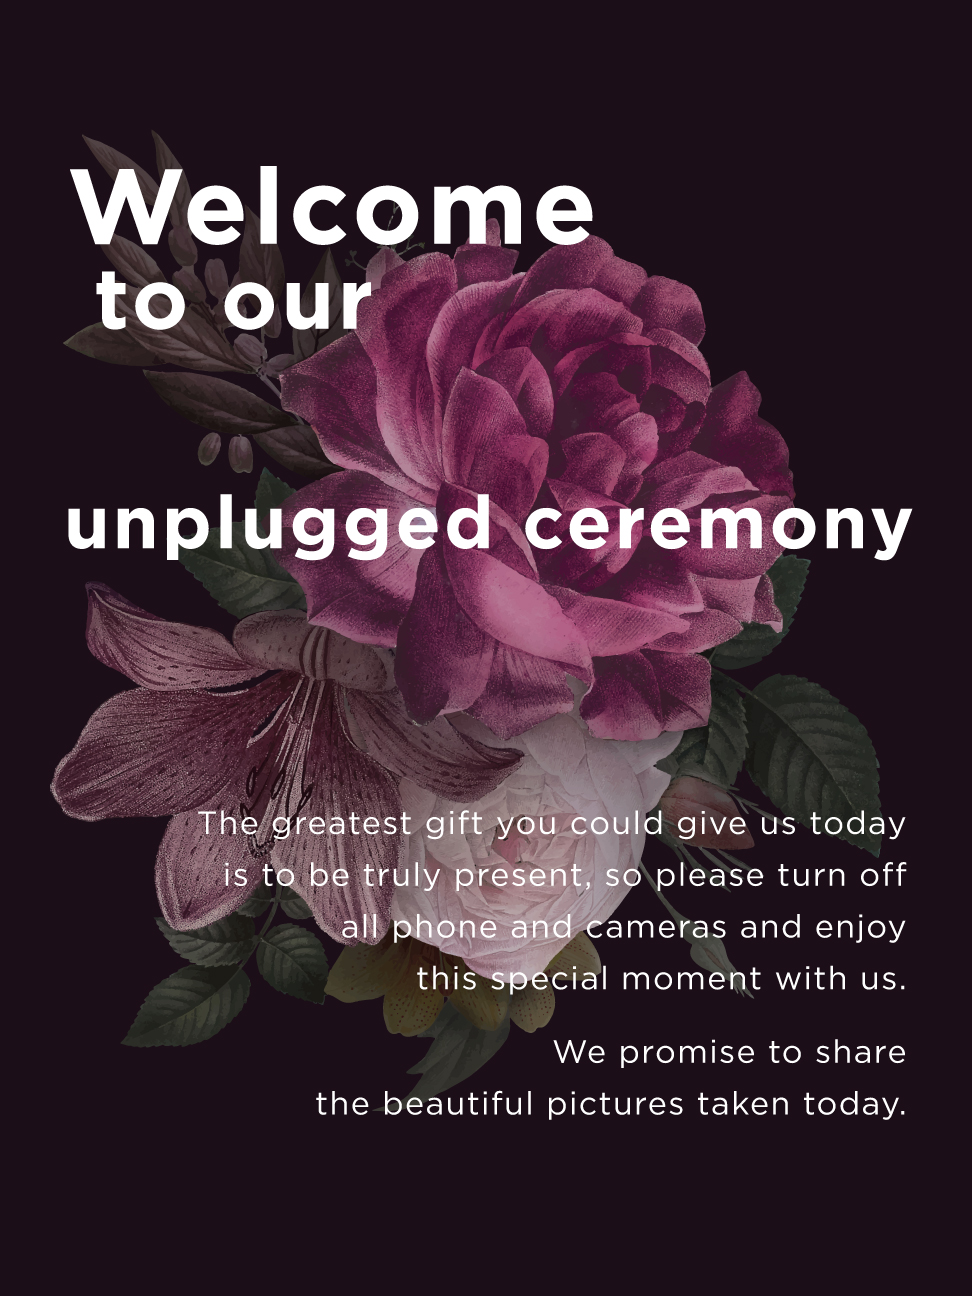 Unplugged Welcome Sign -  Font colours customizable